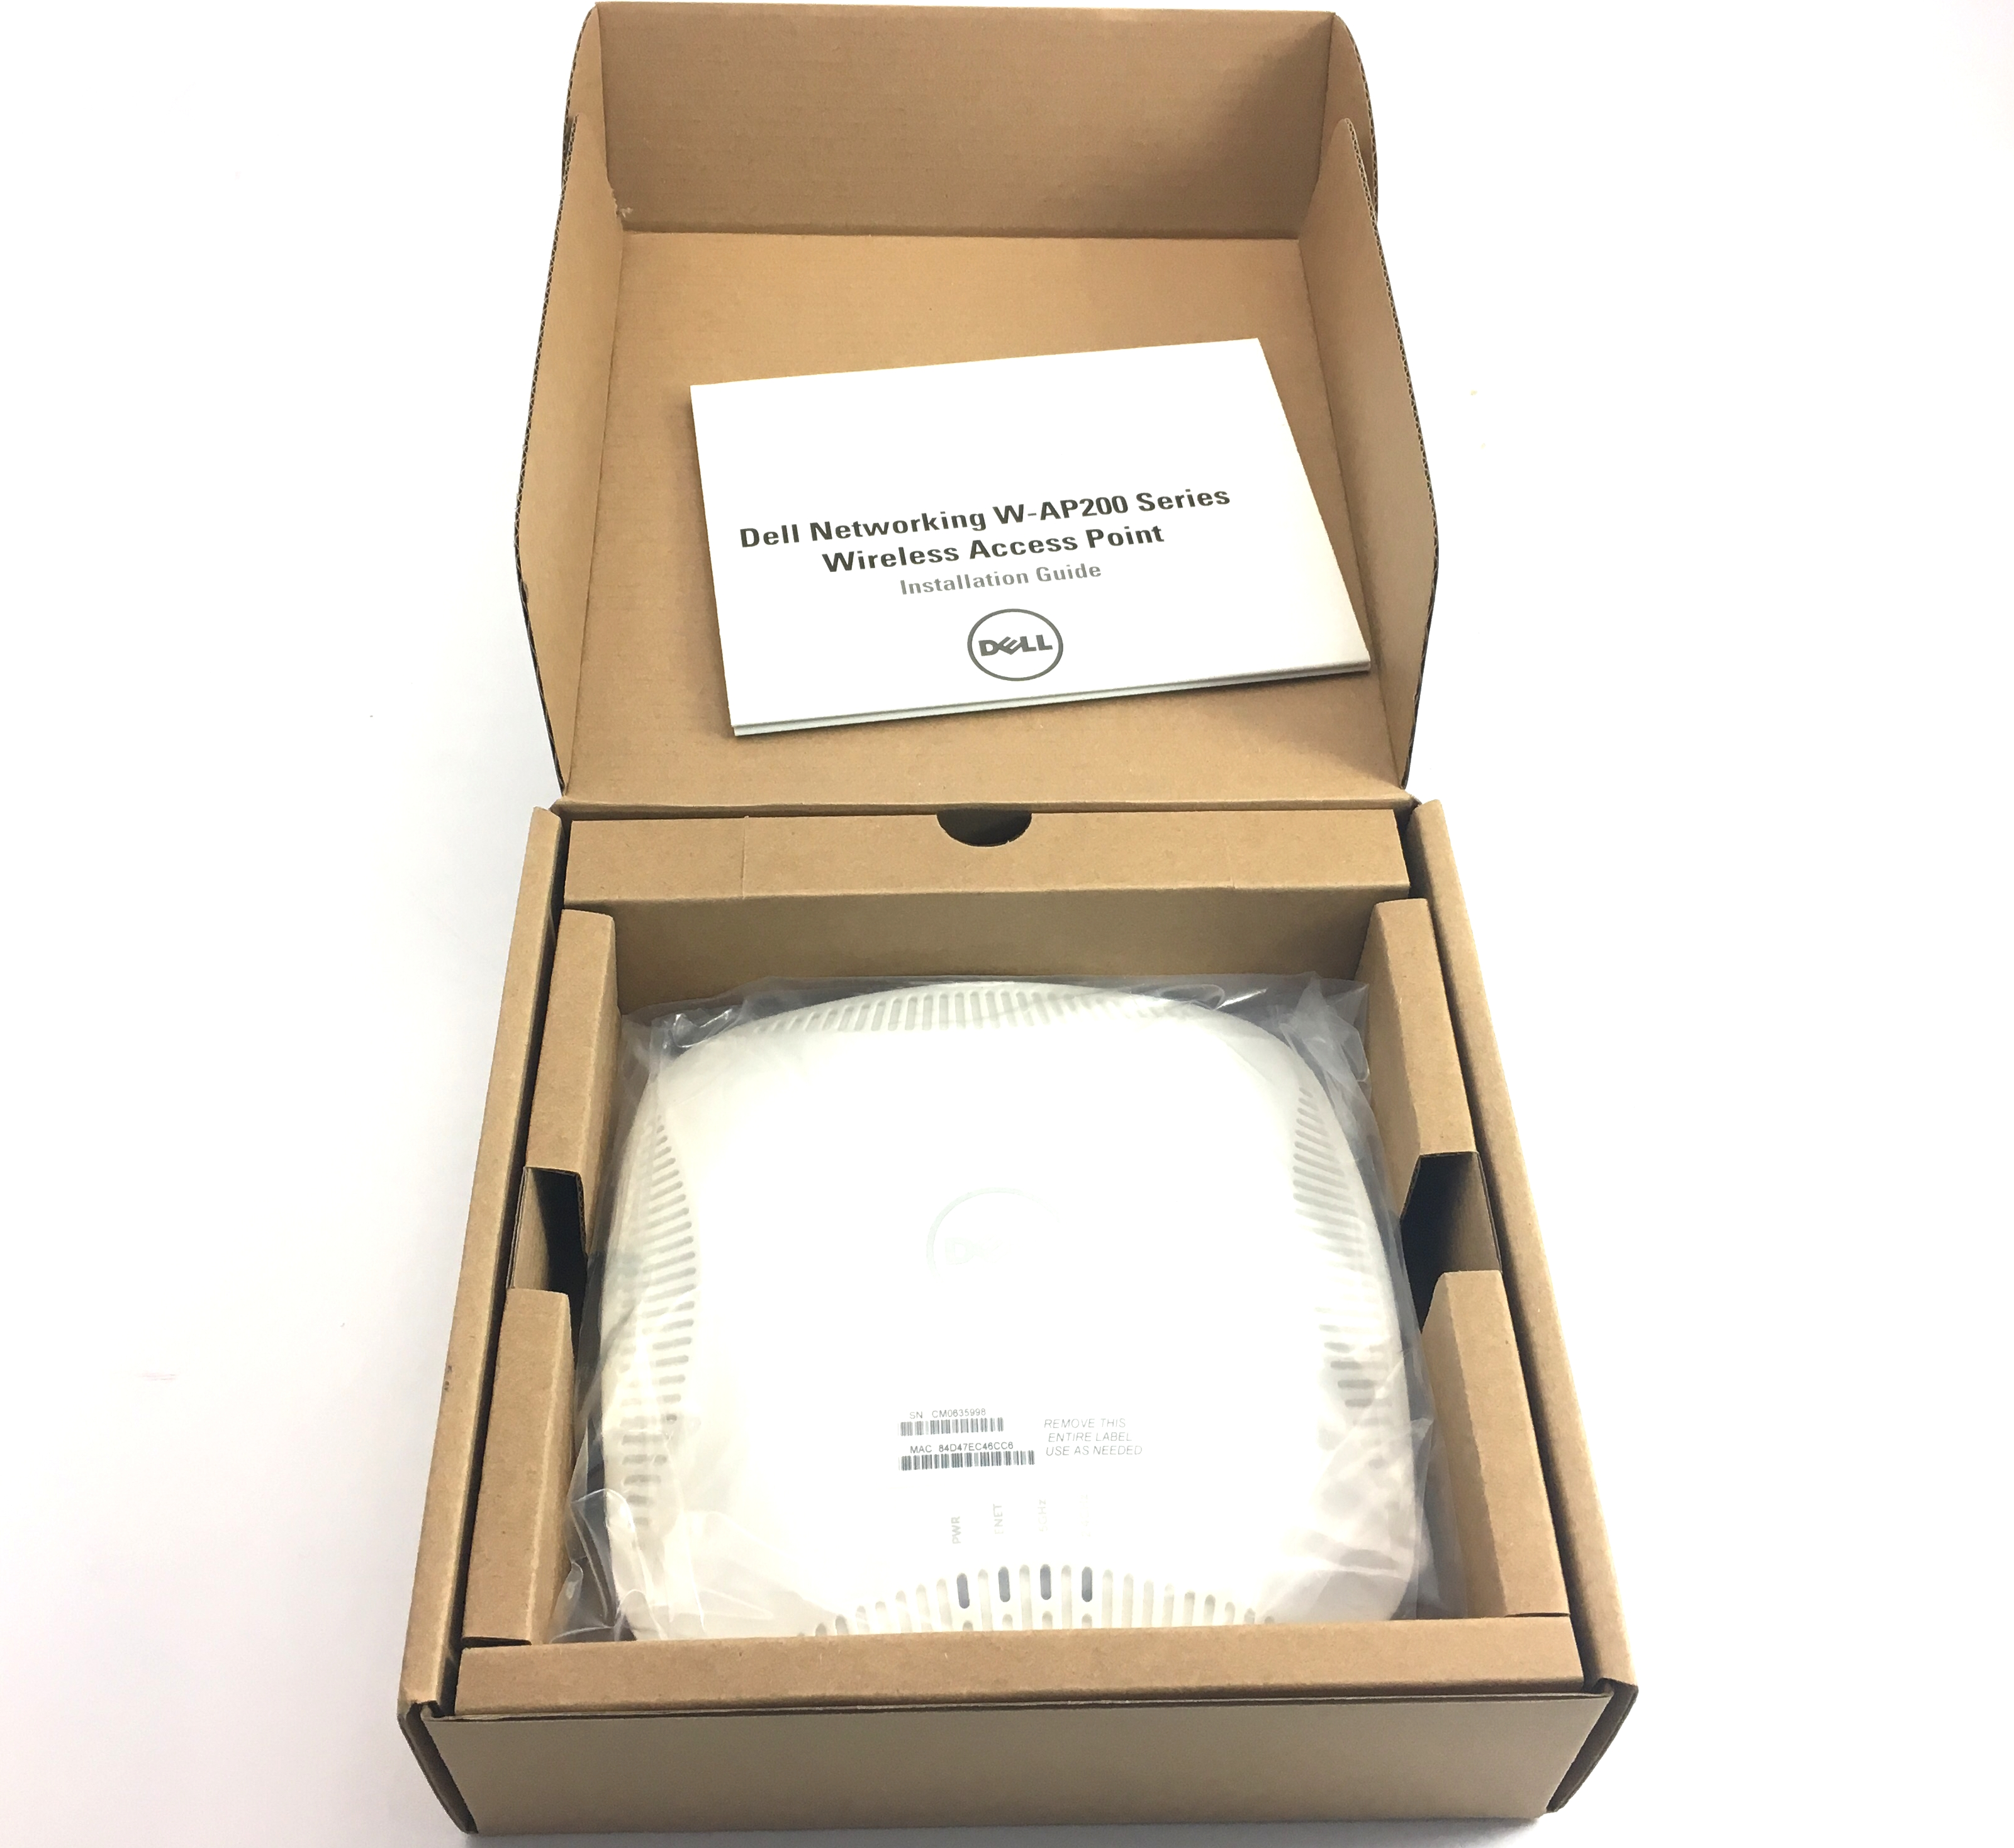 Dell Networking W-Ap200 Series Wireless Access Point (71H9X)